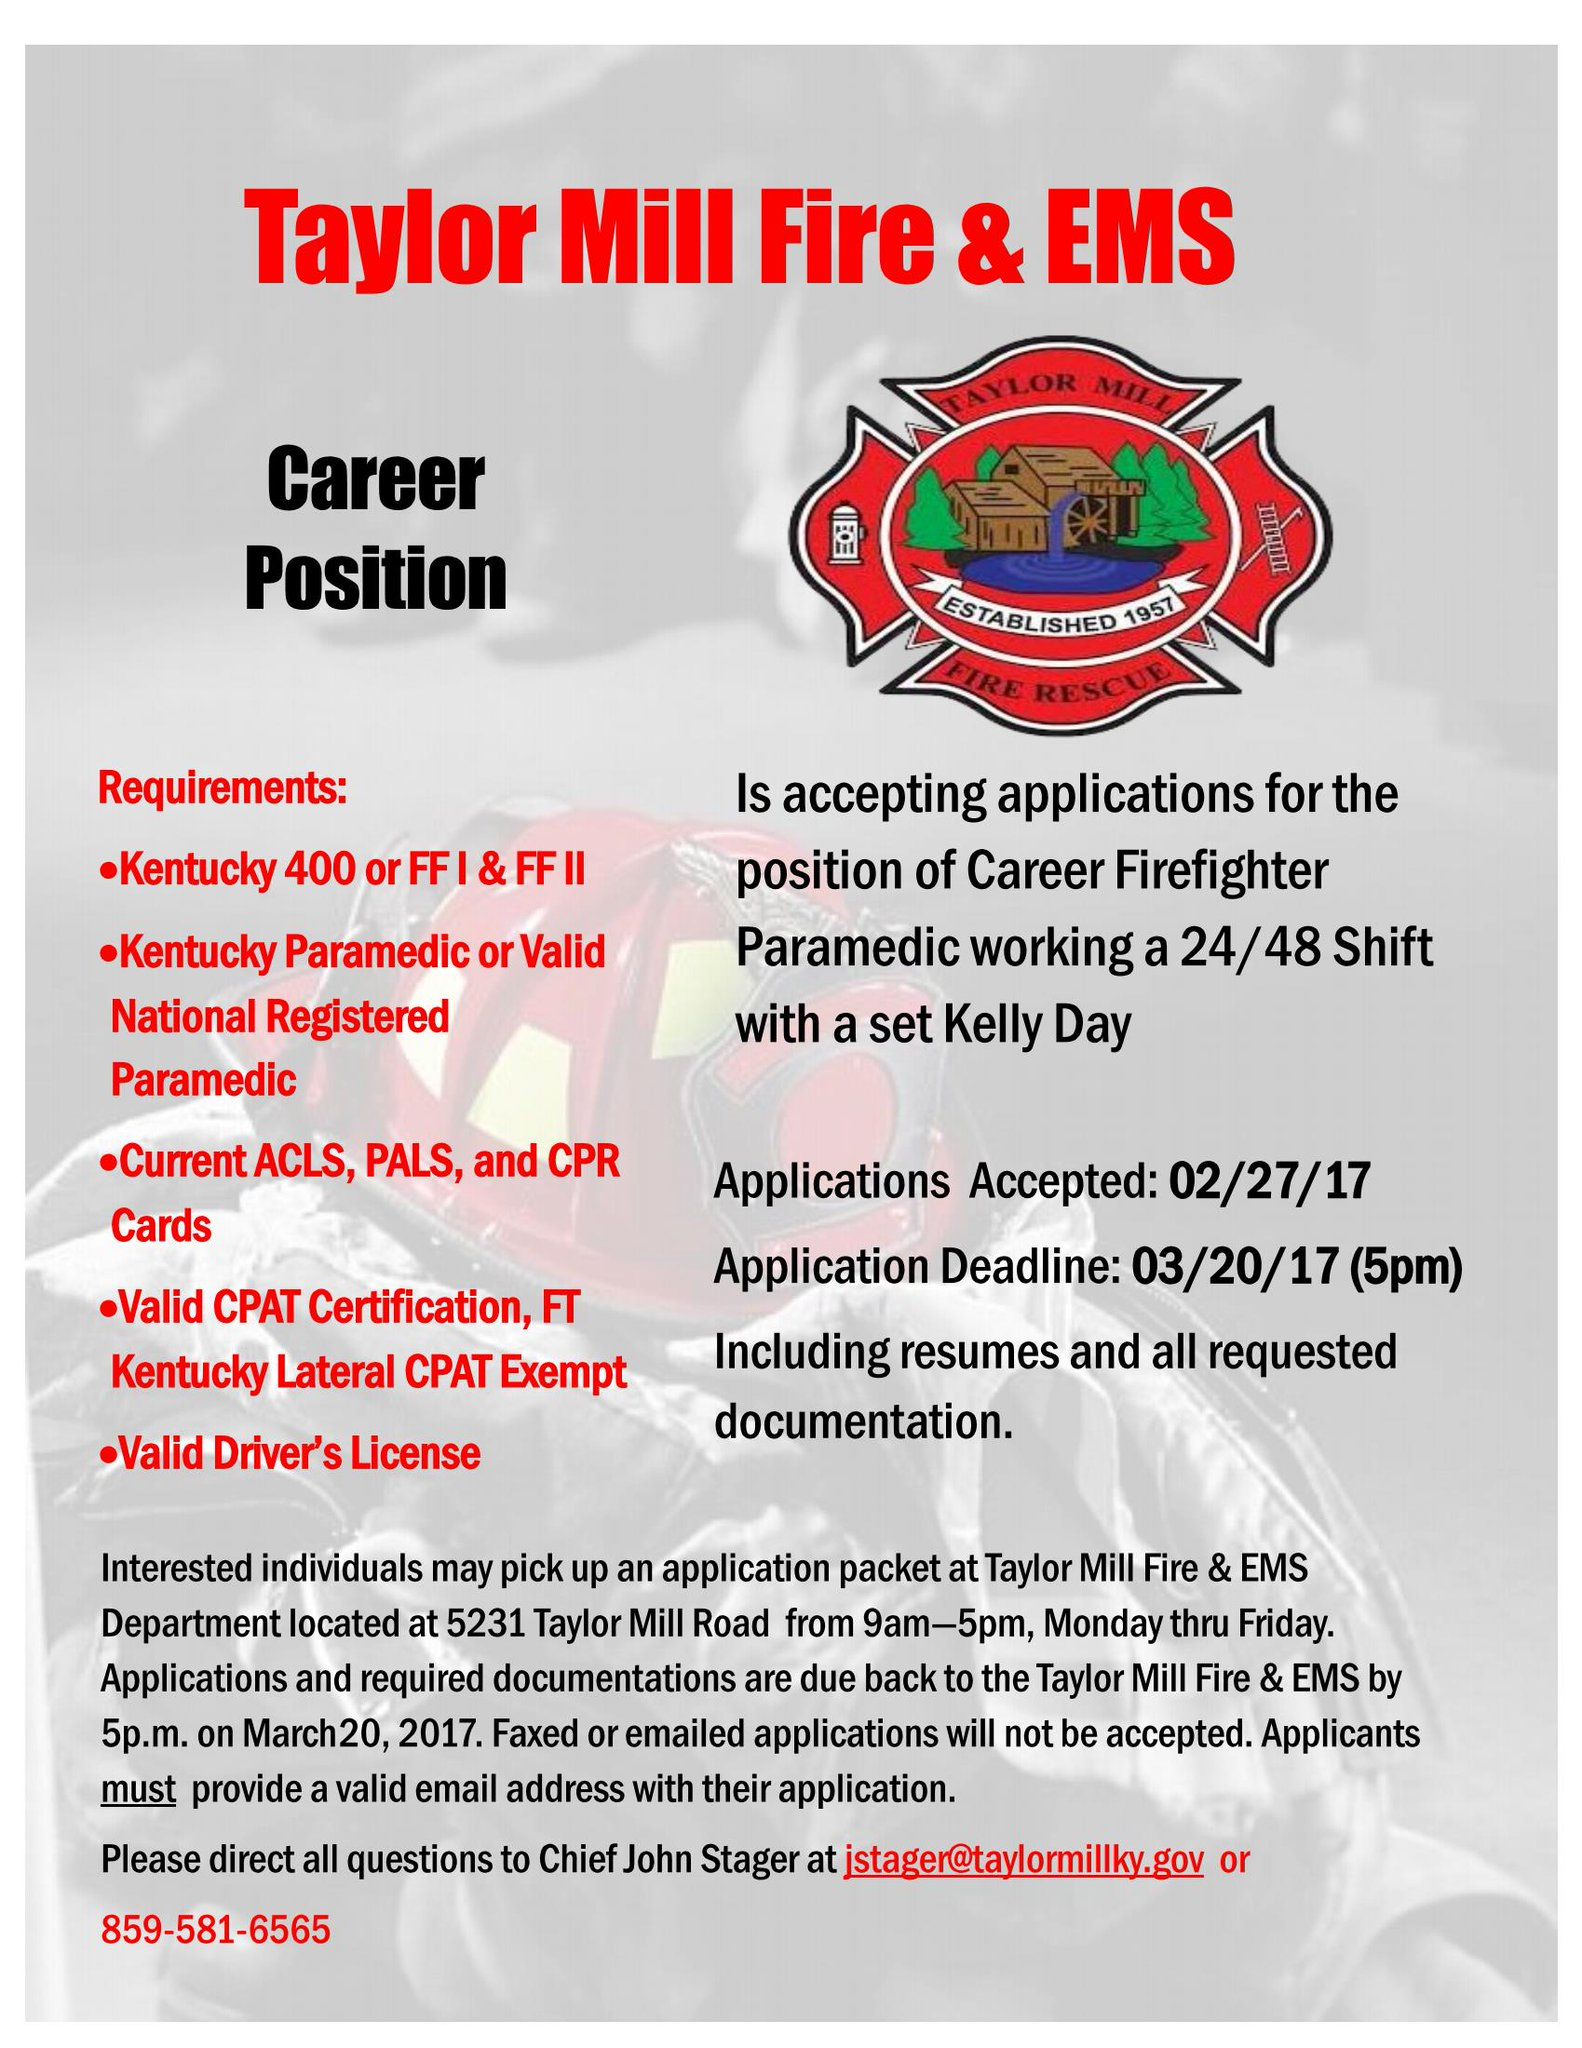 Taylor Mill Fireems On Twitter Taylor Mill Fire Ems Is